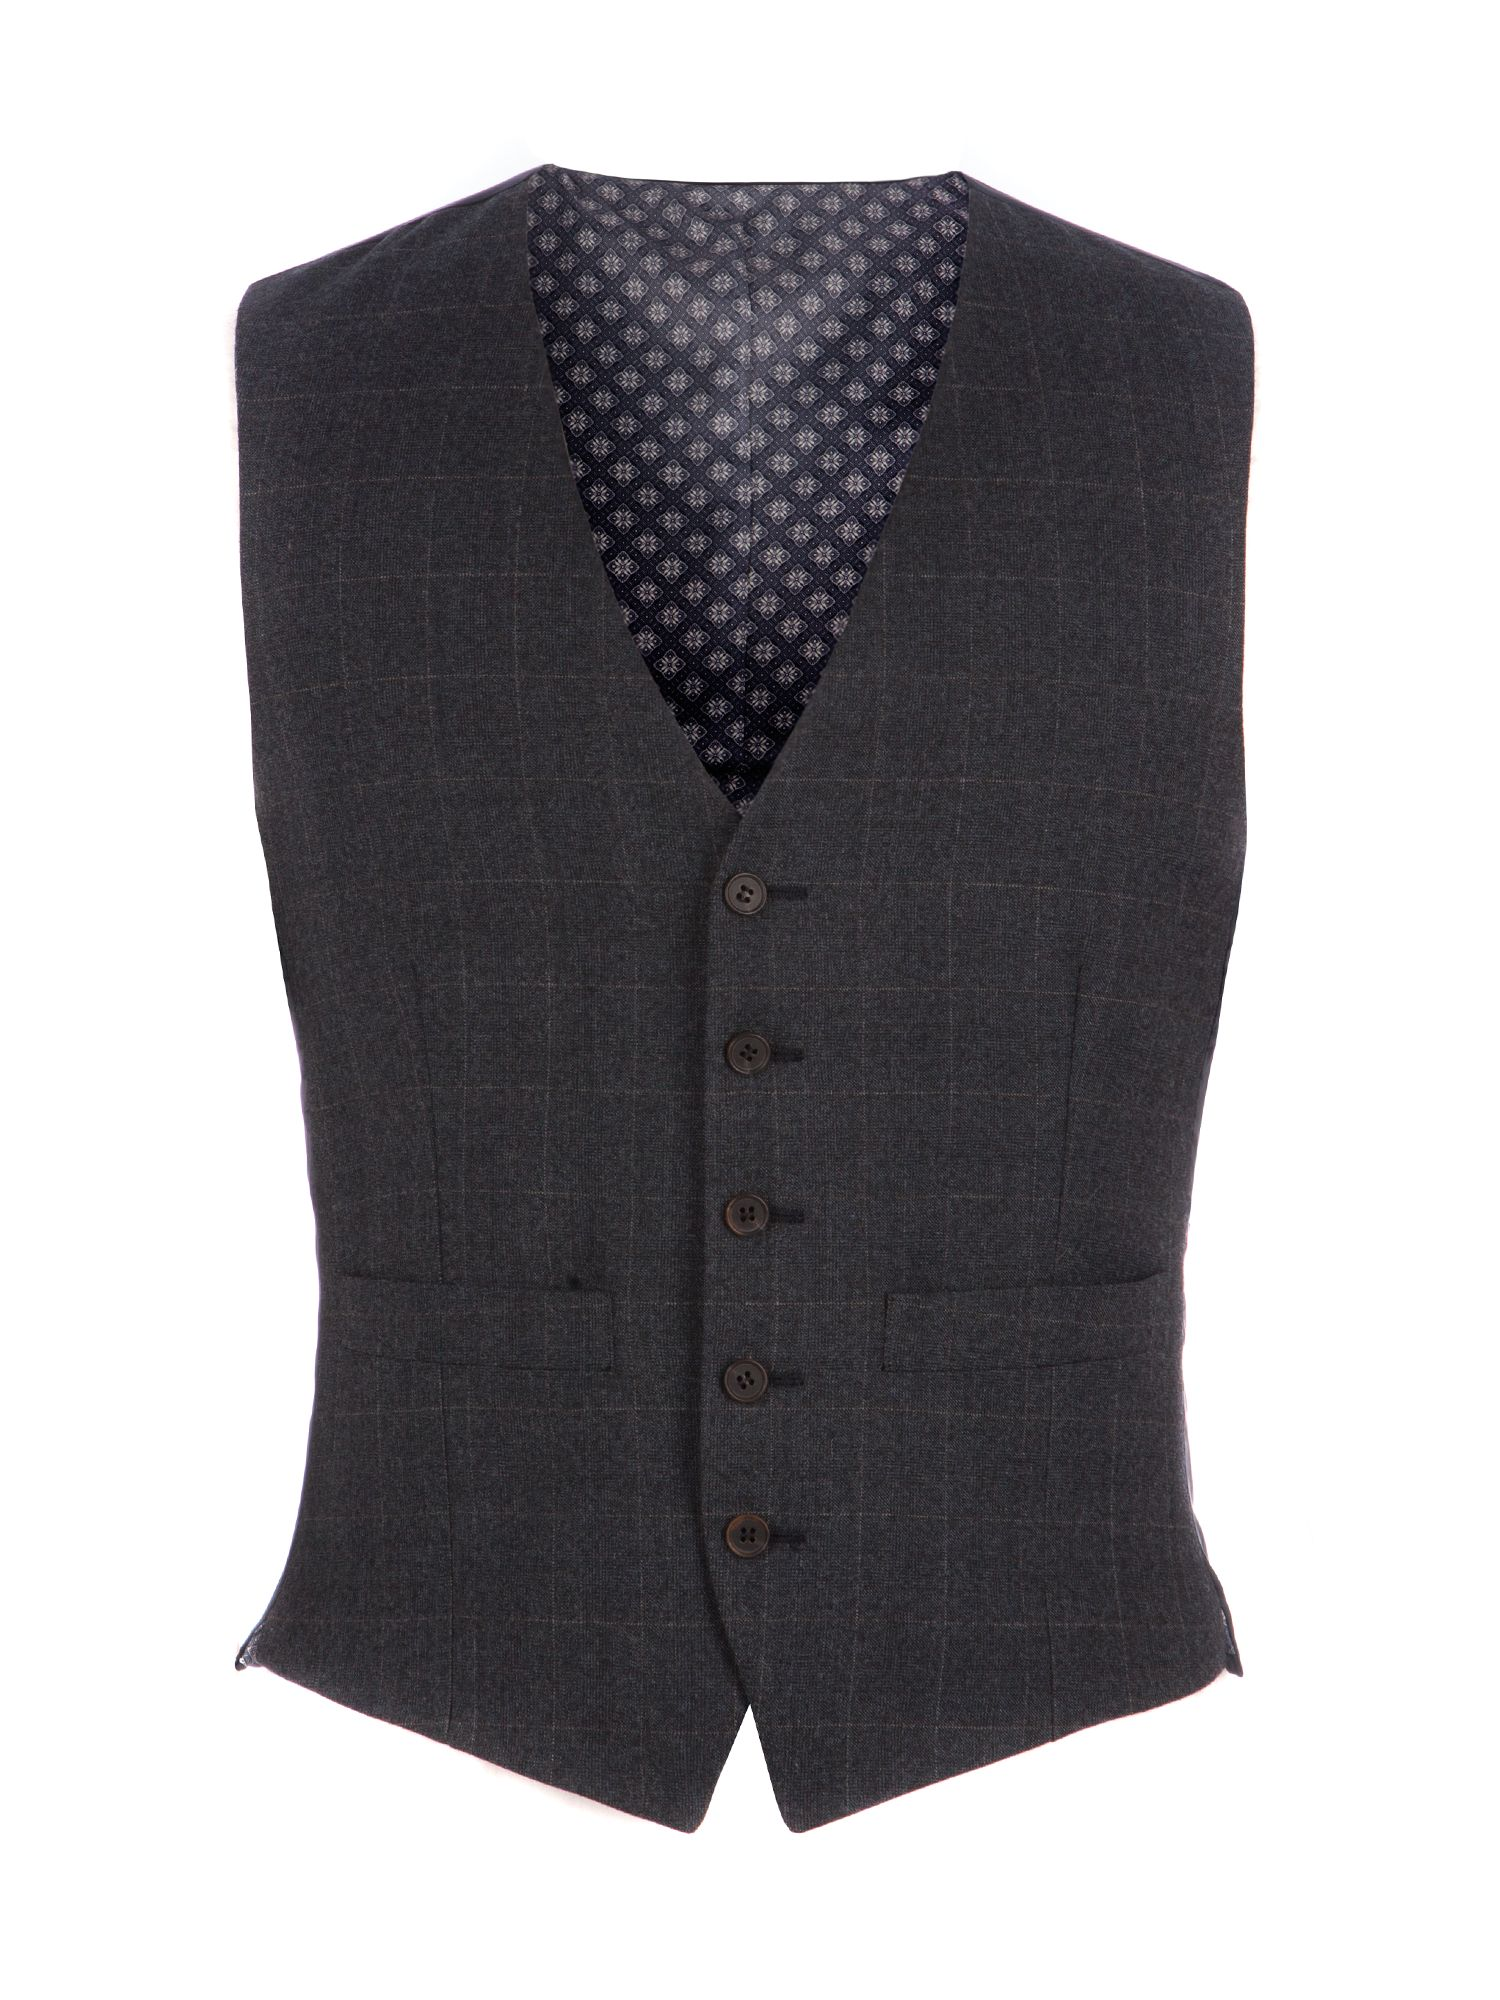 ditilink.gq offers Green Waistcoat at cheap prices, so you can shop from a huge selection of Green Waistcoat, FREE Shipping available worldwide.